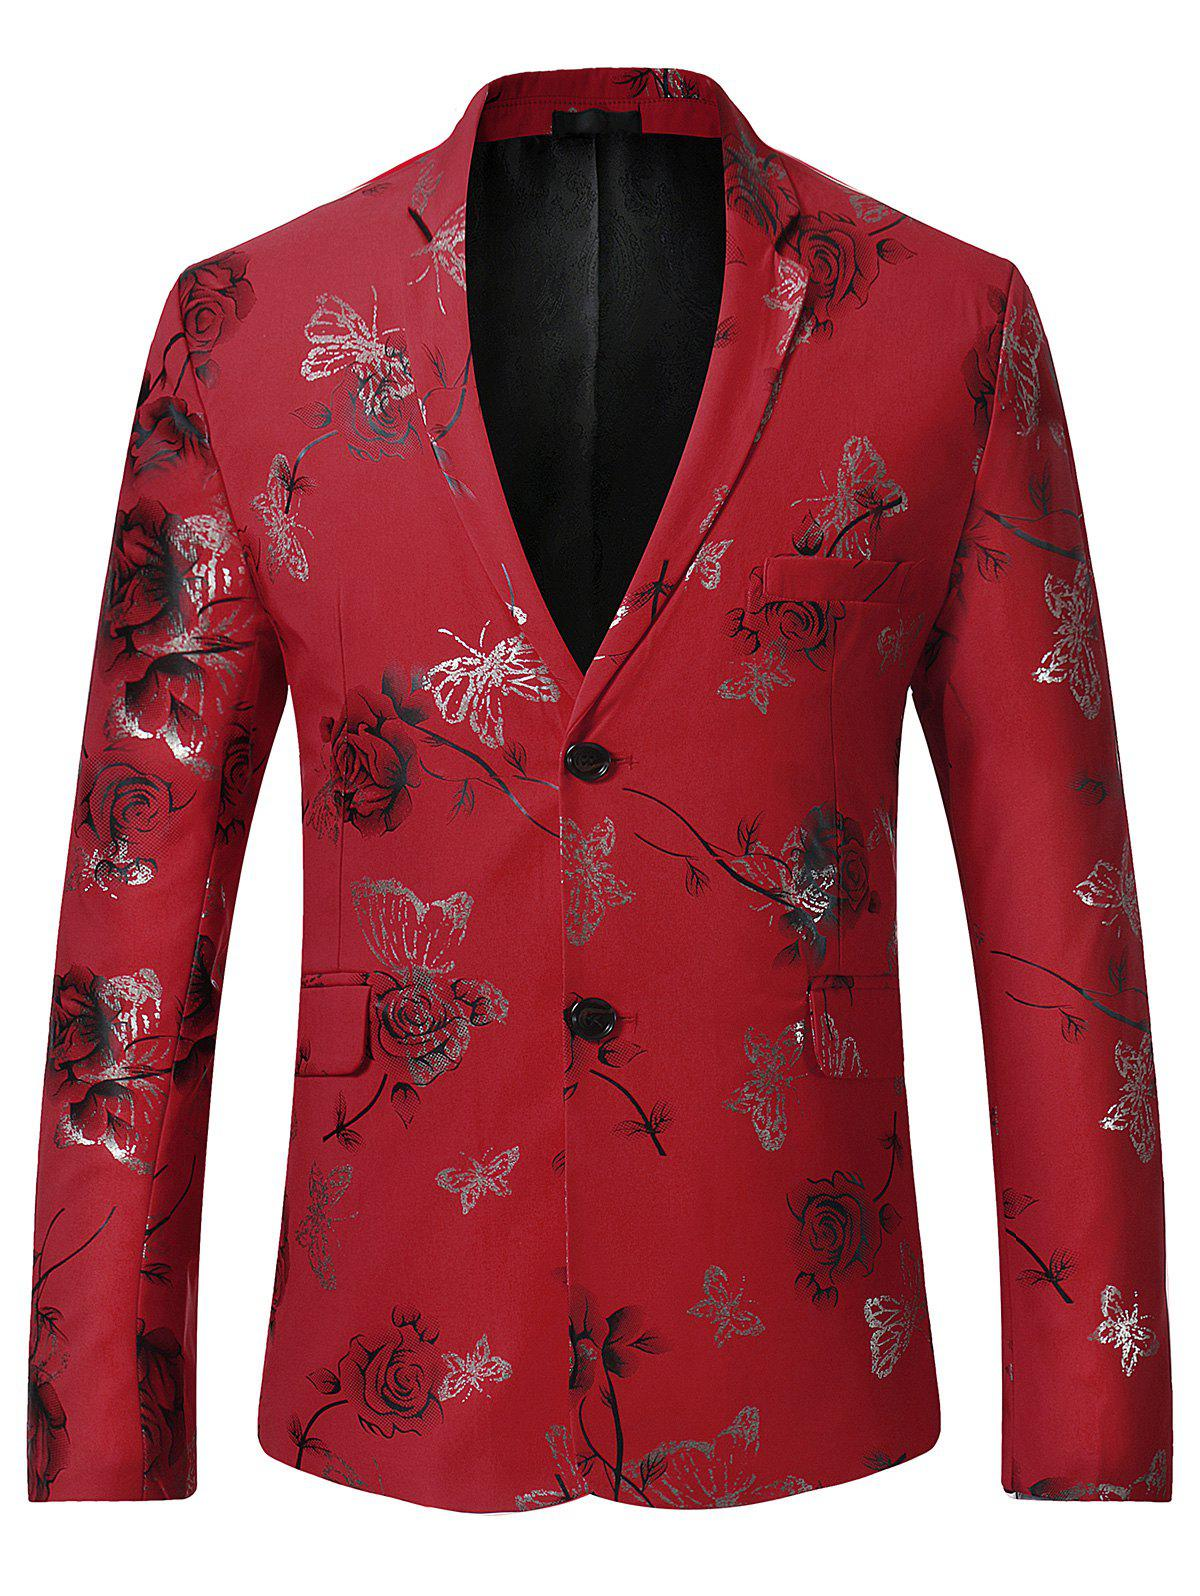 Lapel Metallic Butterfly Floral Printed Blazer - RED L